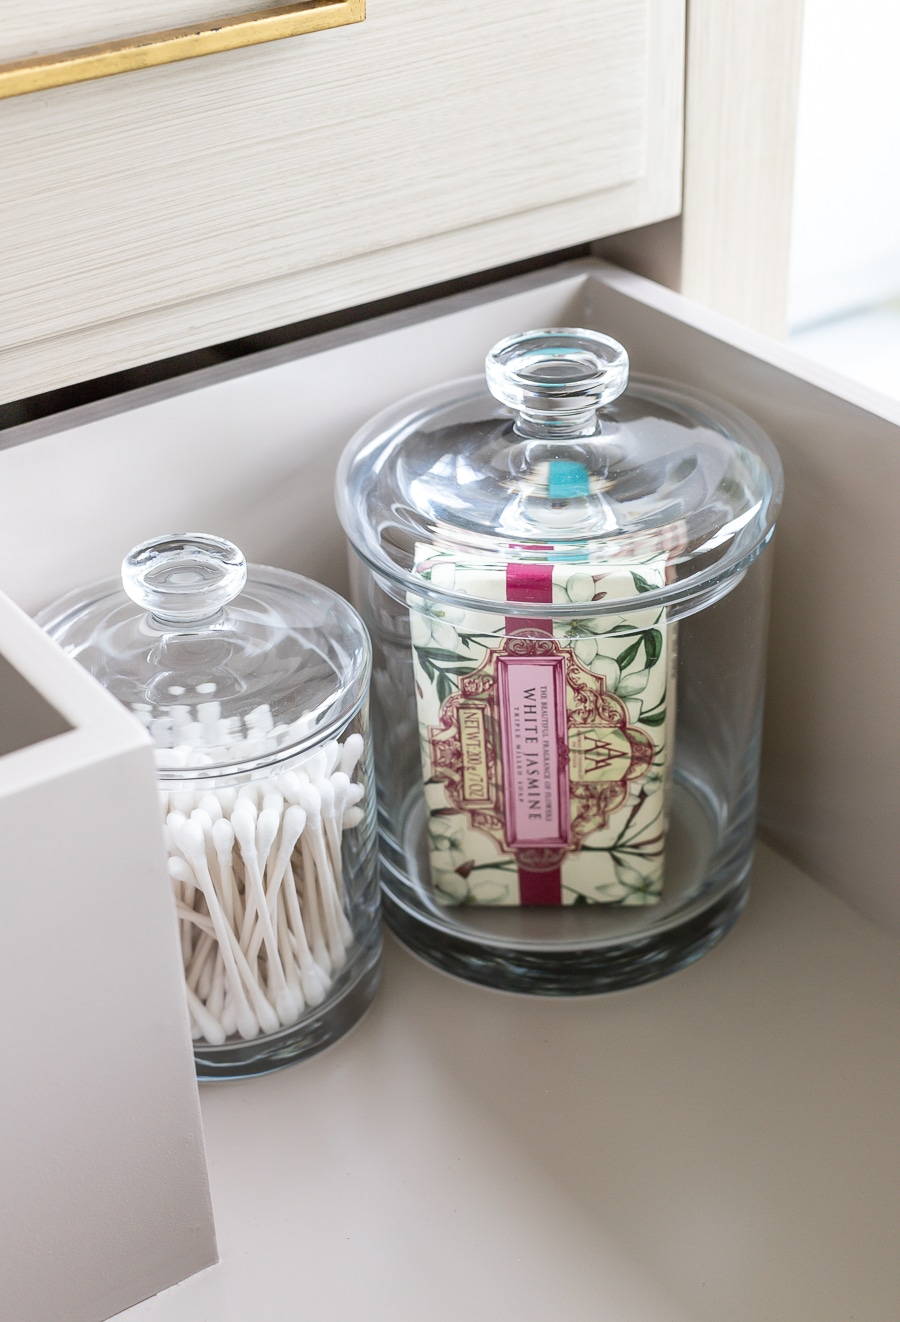 Guest bathroom essentials - how to make your guests feel pampered